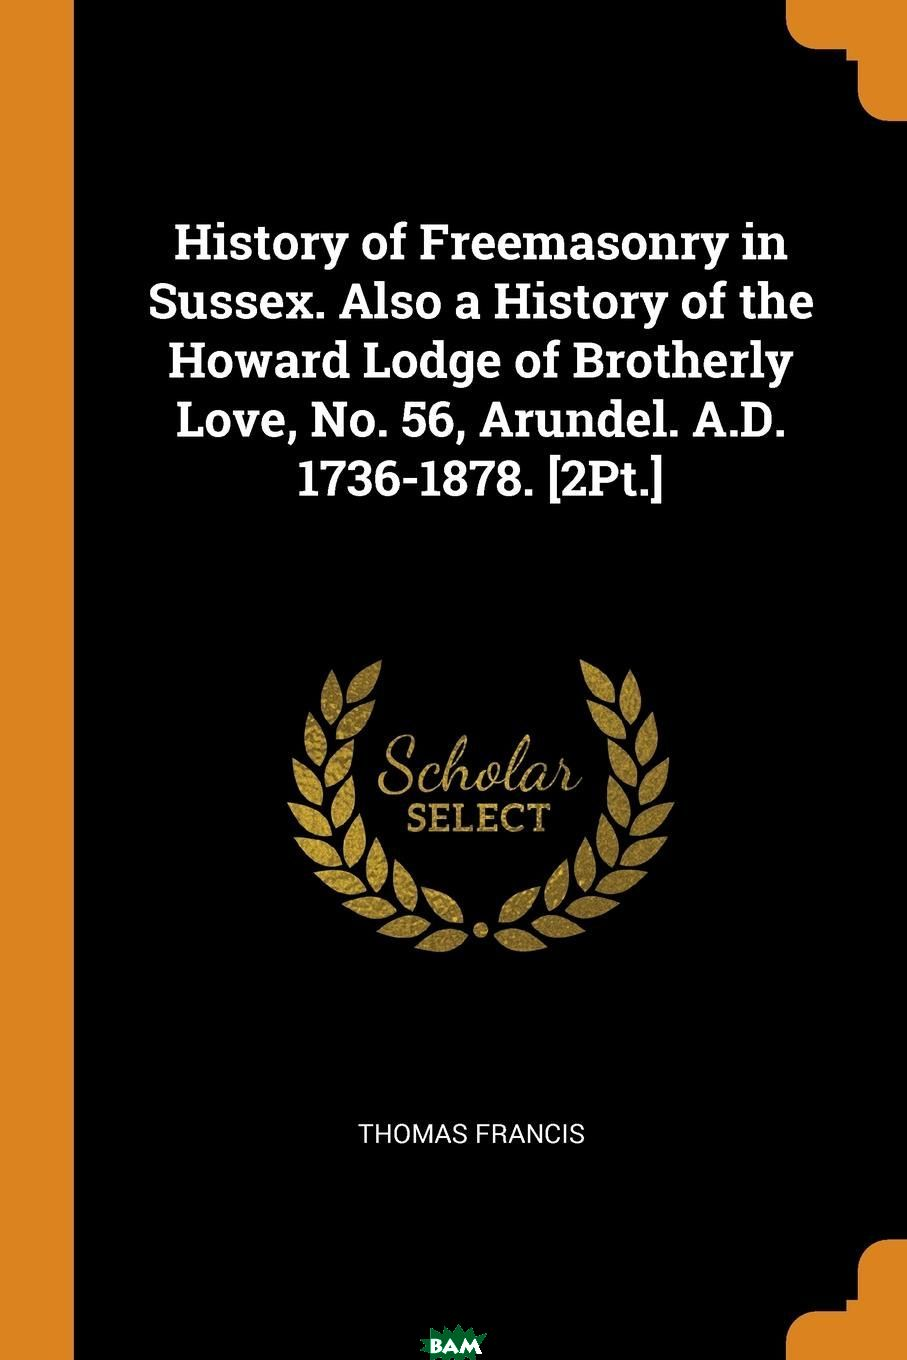 Купить History of Freemasonry in Sussex. Also a History of the Howard Lodge of Brotherly Love, No. 56, Arundel. A.D. 1736-1878. .2Pt.., Thomas Francis, 9780341730101